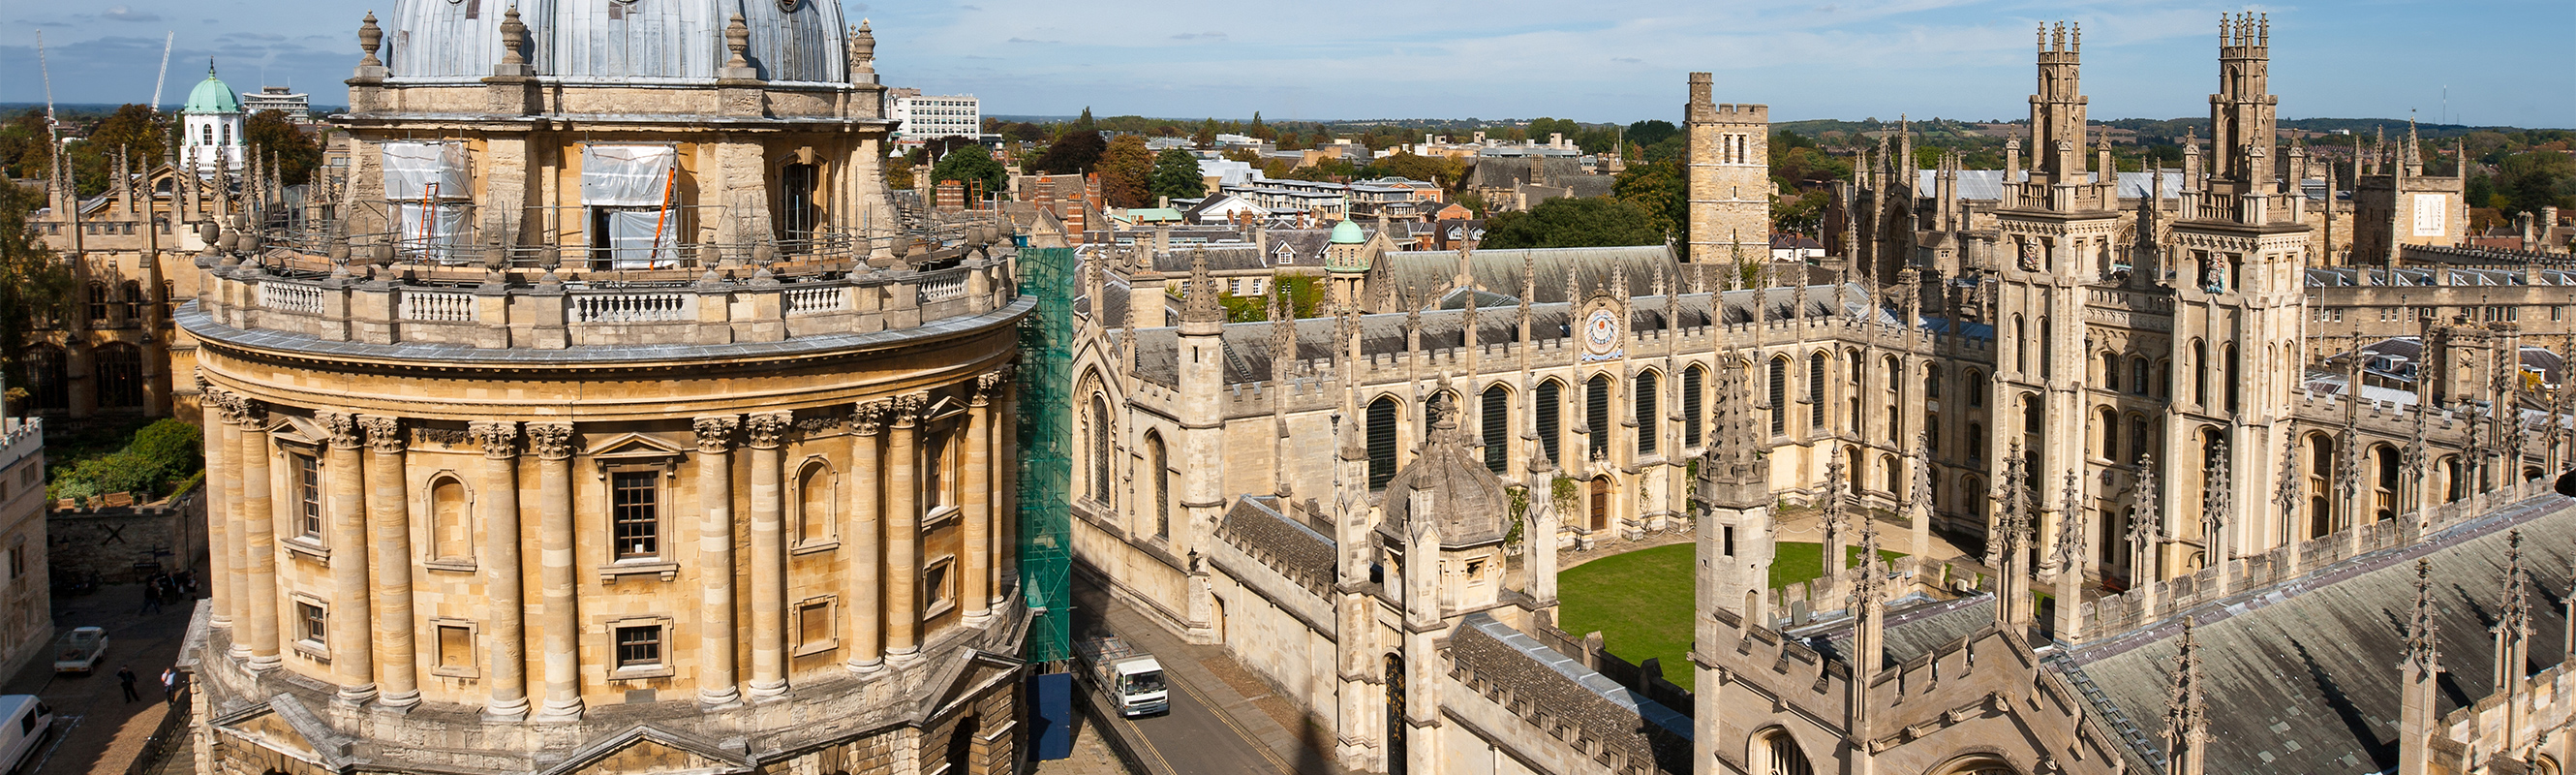 21 Reasons to Visit Oxford in 2021